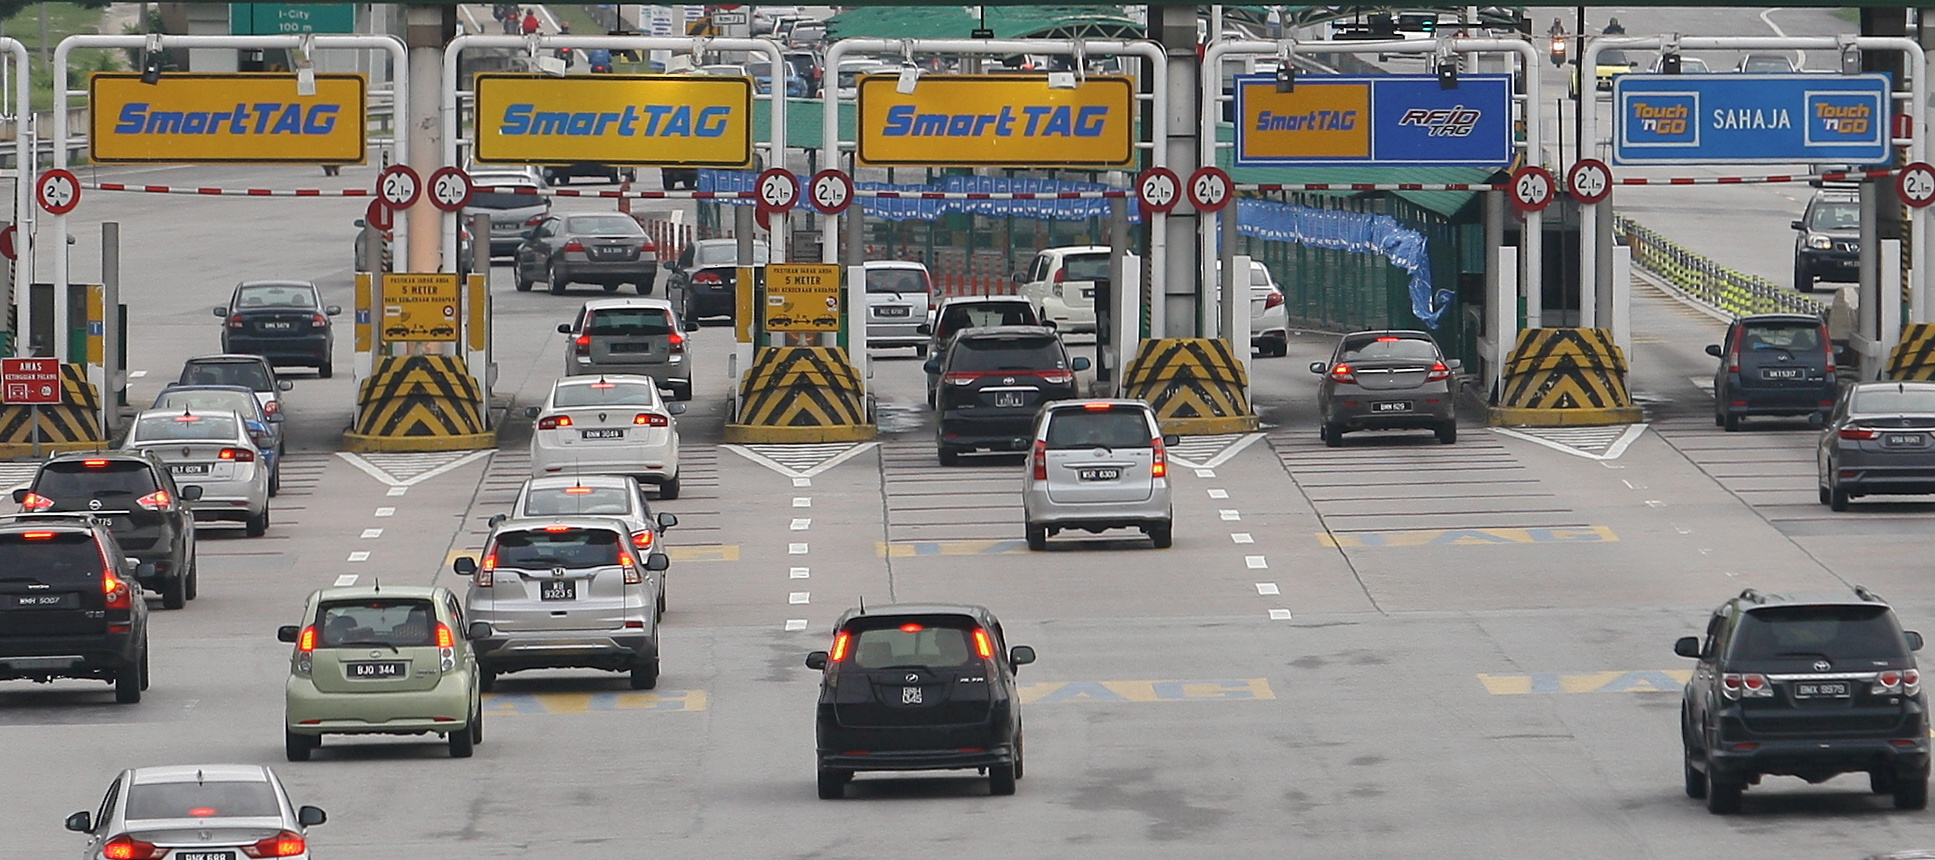 TNG PayDirect and RFID Users Get 20% Rebate On Toll